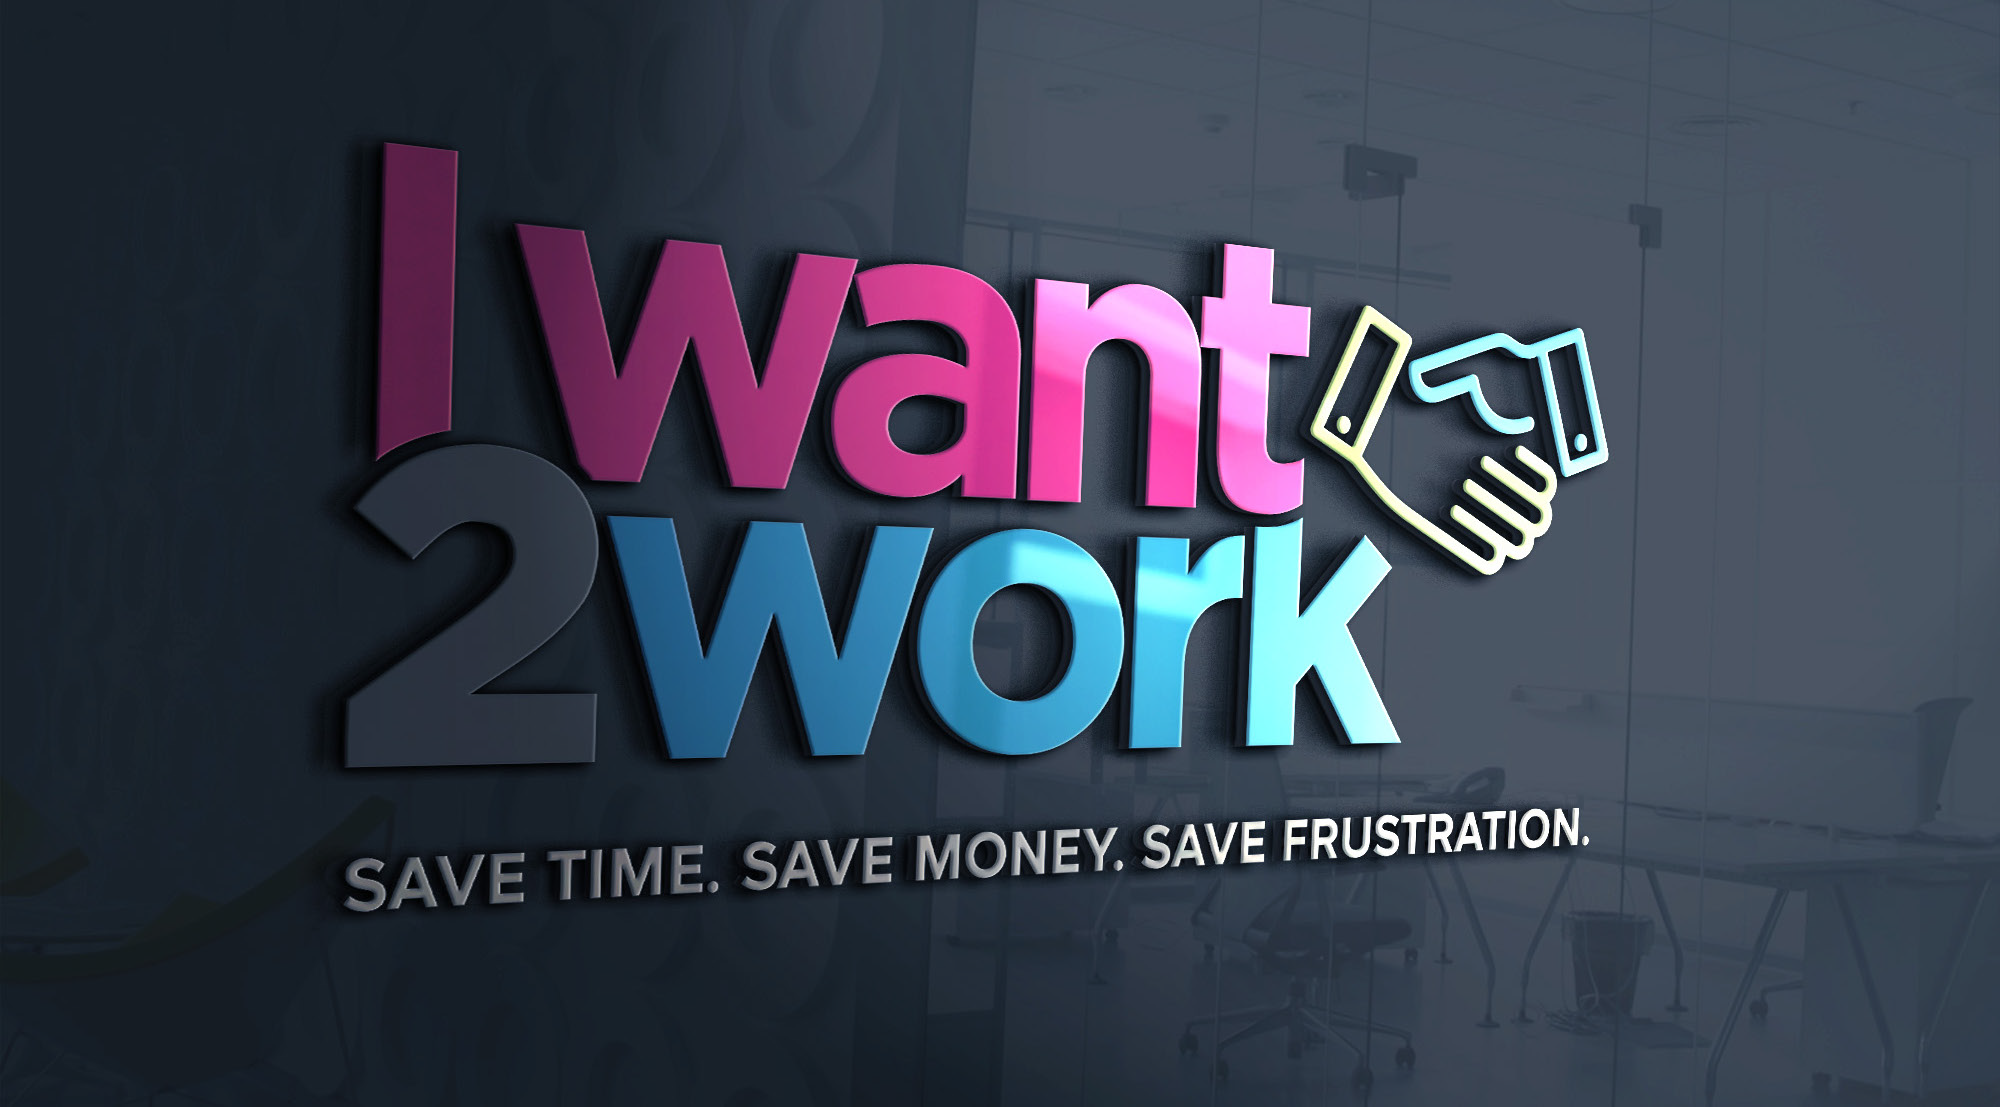 i want 2 work save time money frustration job seeker employer portal graphic